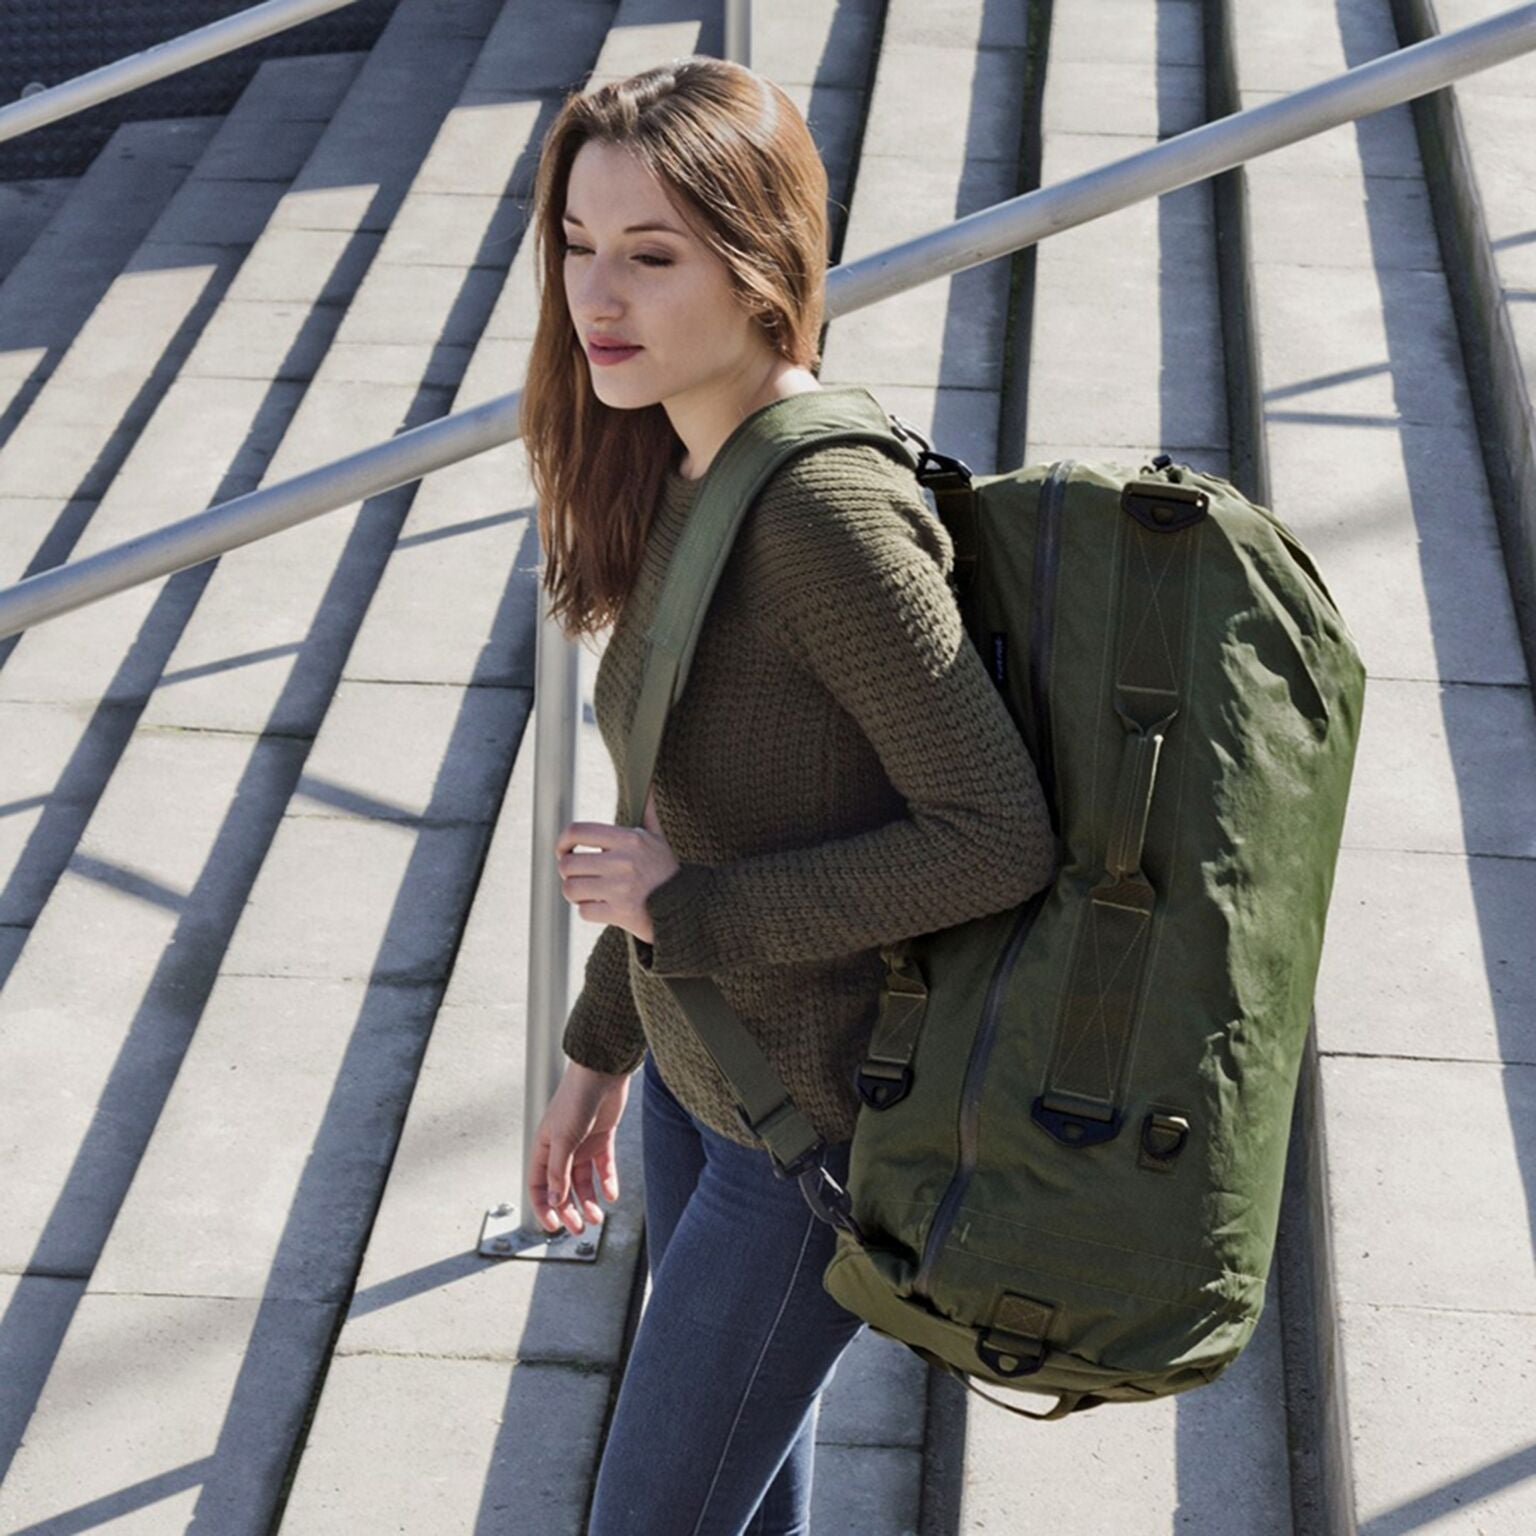 The Adjustable Bag A10 by Piorama